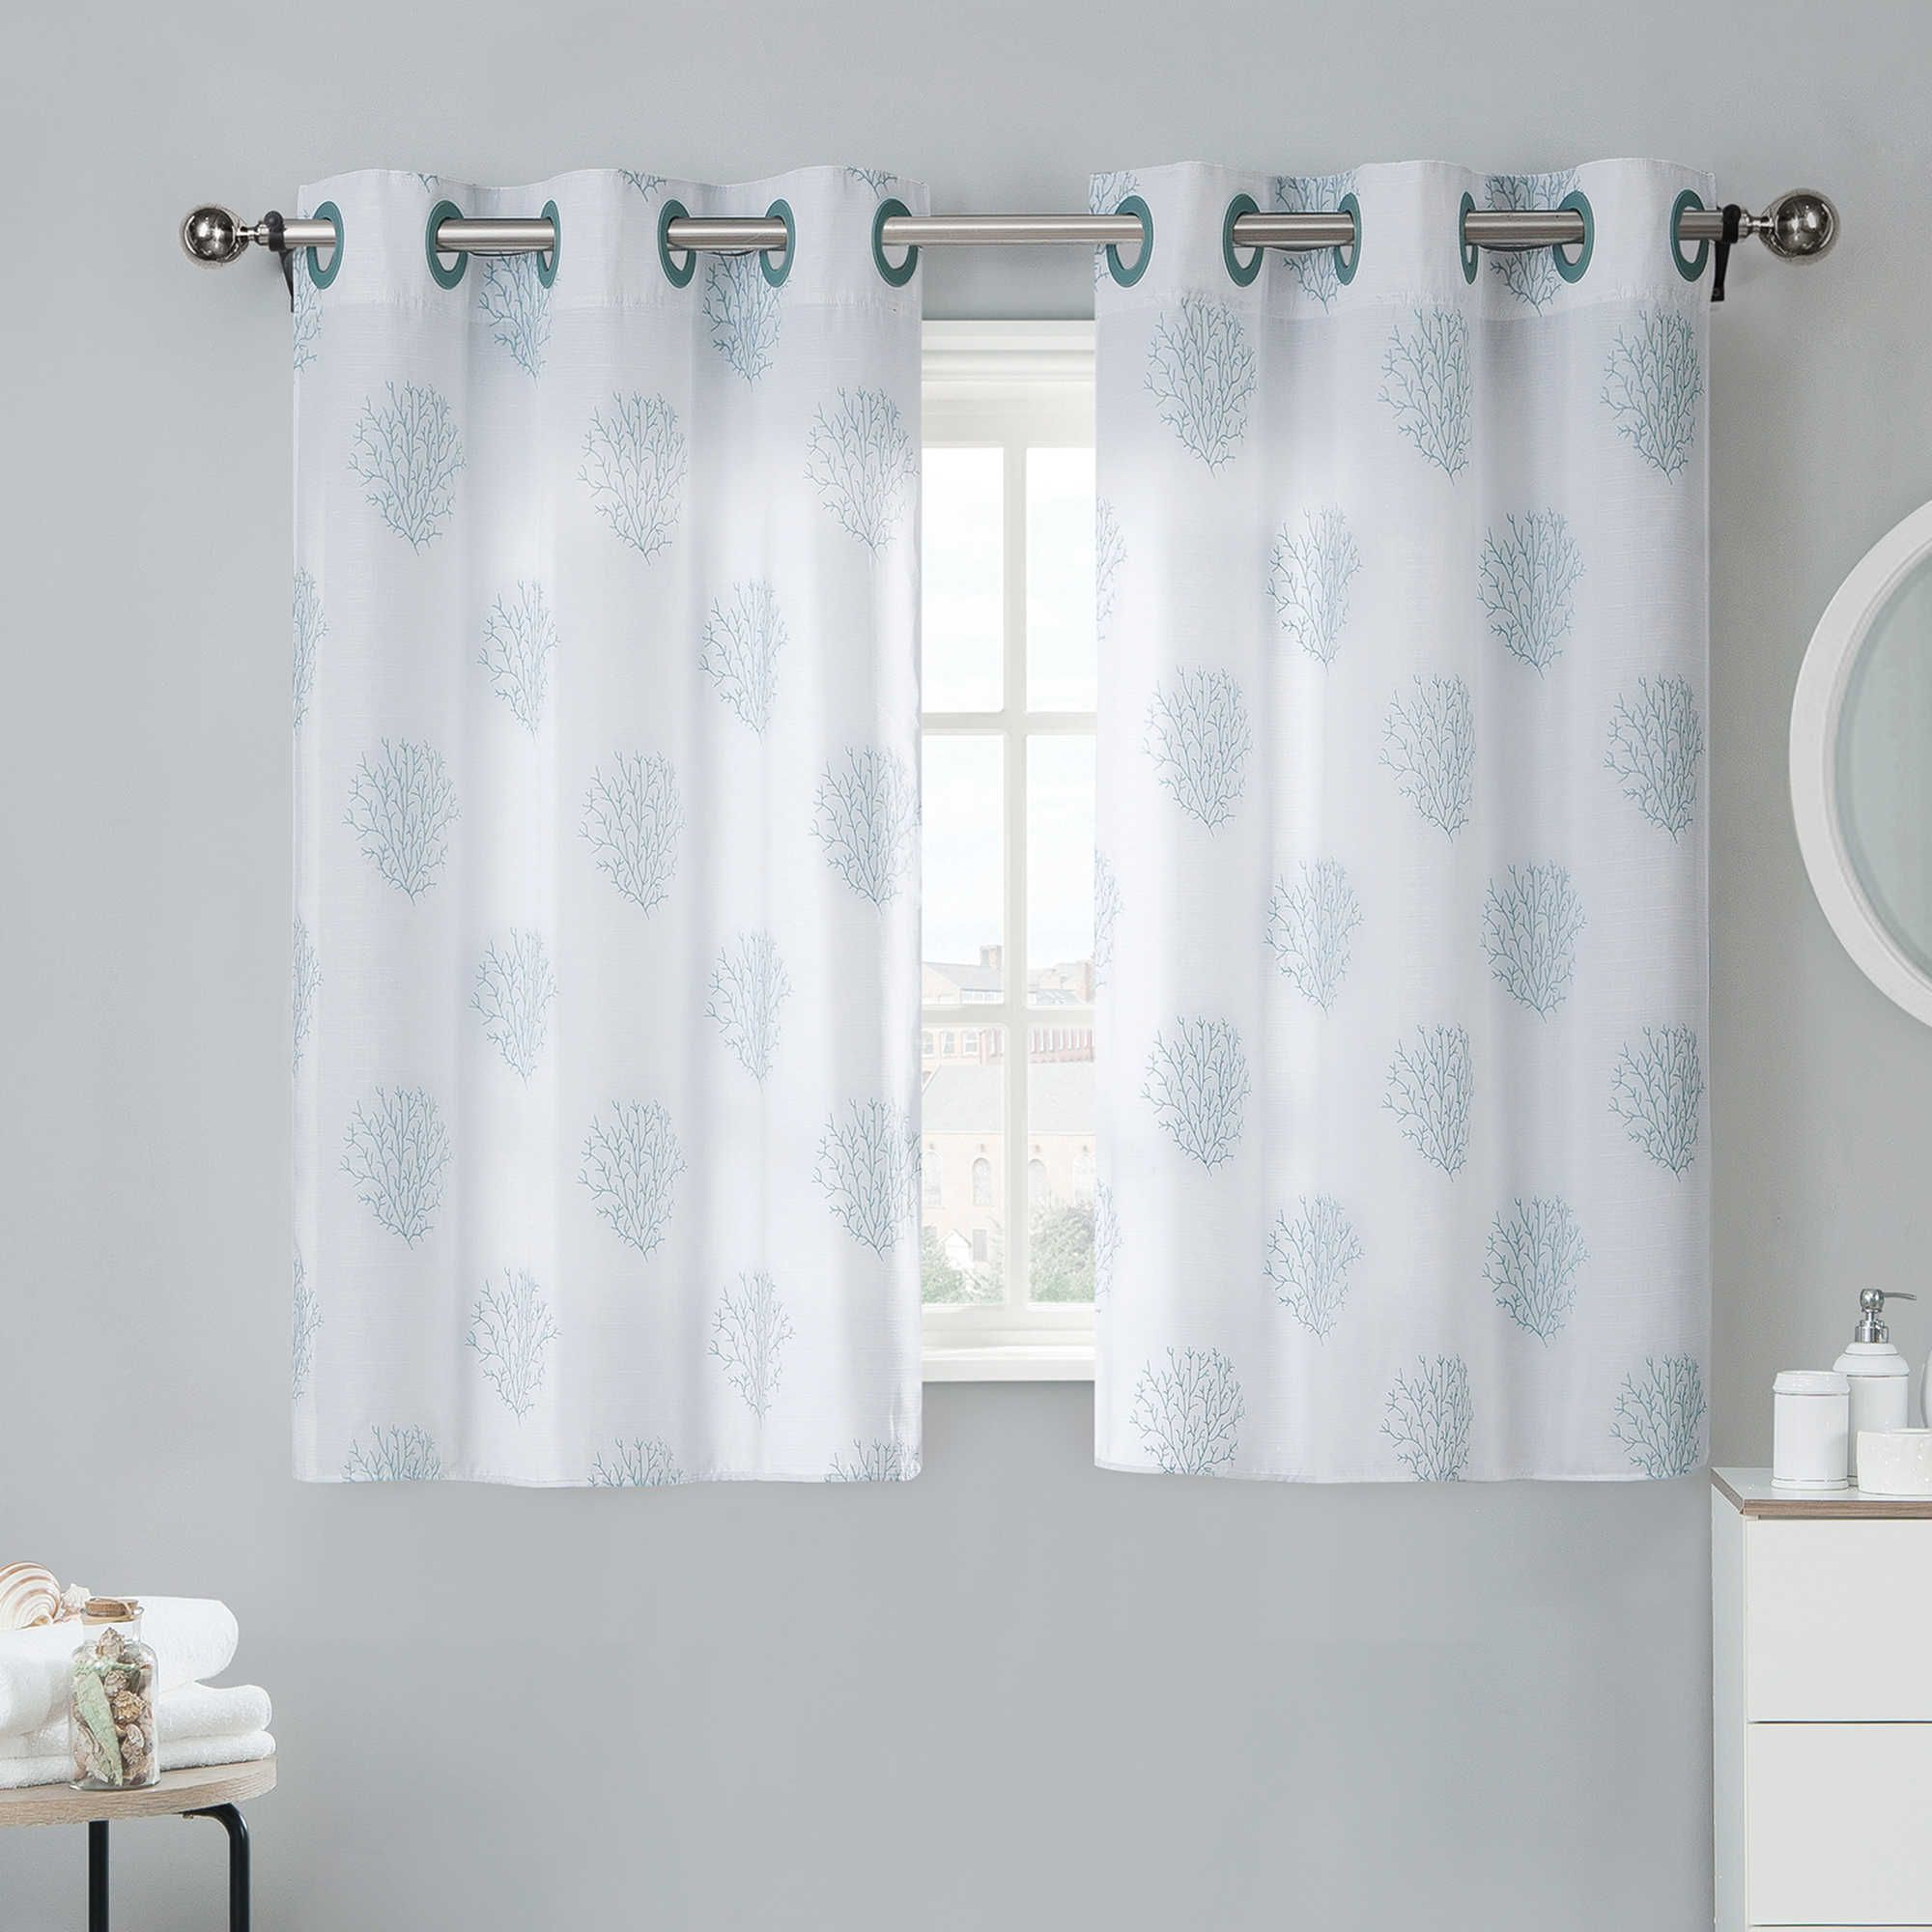 Coral Reef 38 Inch Window Curtain Tier Pair In Grey Mist Small